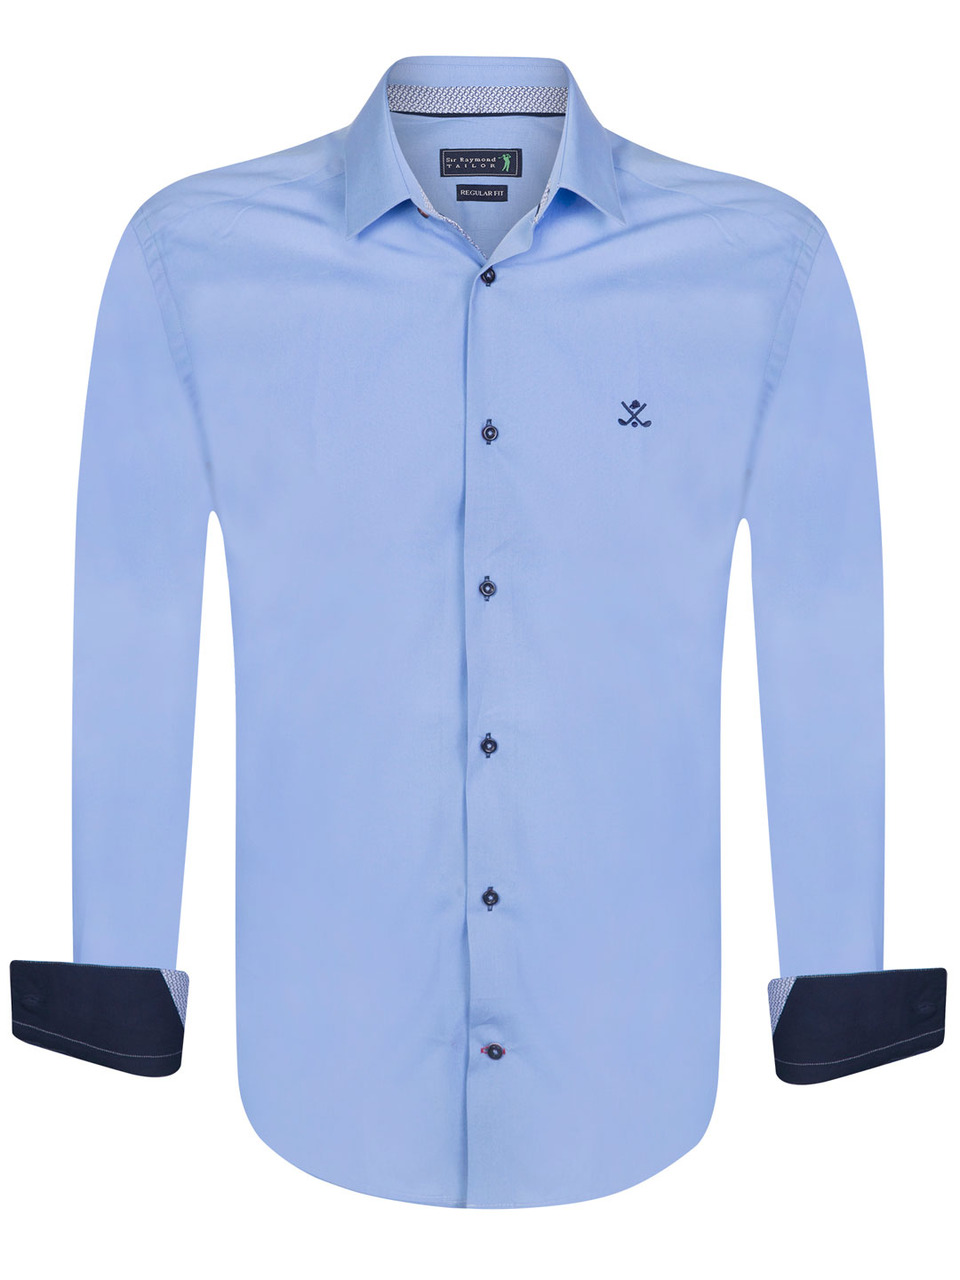 Concede Shirt in Blue